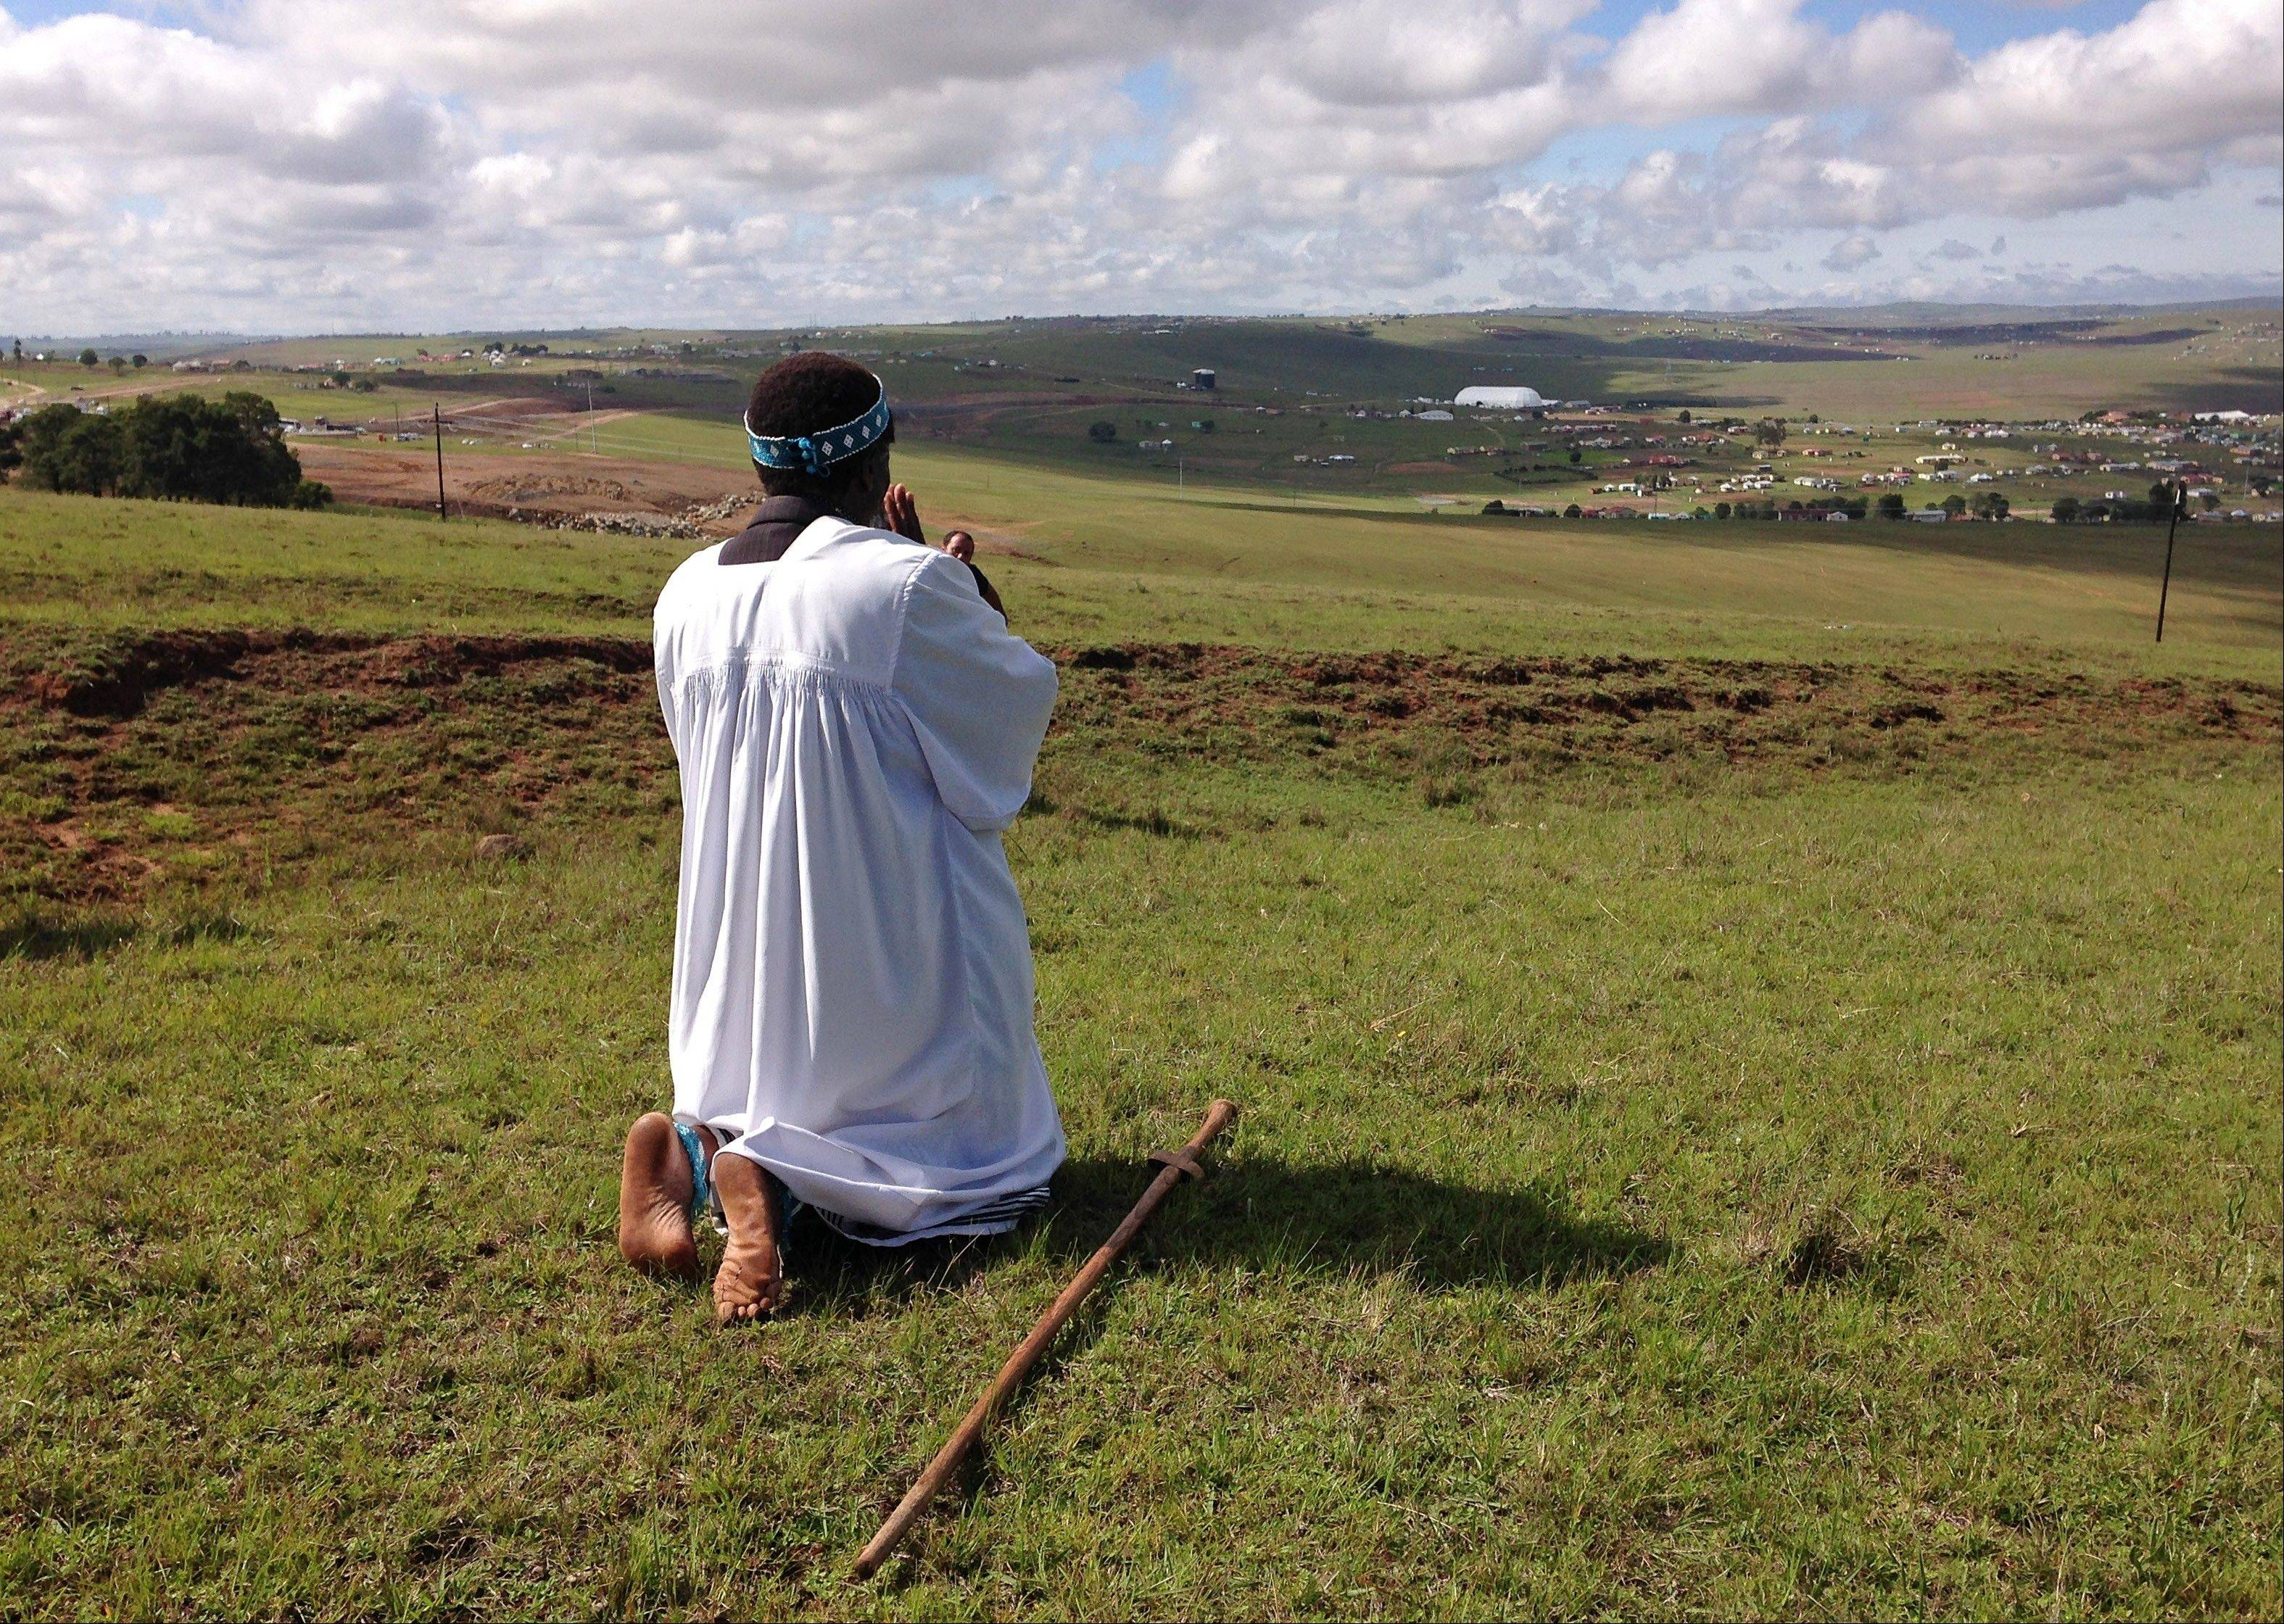 Shembe priest Michael Notychanga prays in the direction of the home of former South African President Nelson Mandela on a hill where in the distance you can see the dome where his funeral service takes place in Qunu, South Africa, Sunday, Dec. 15, 2013.